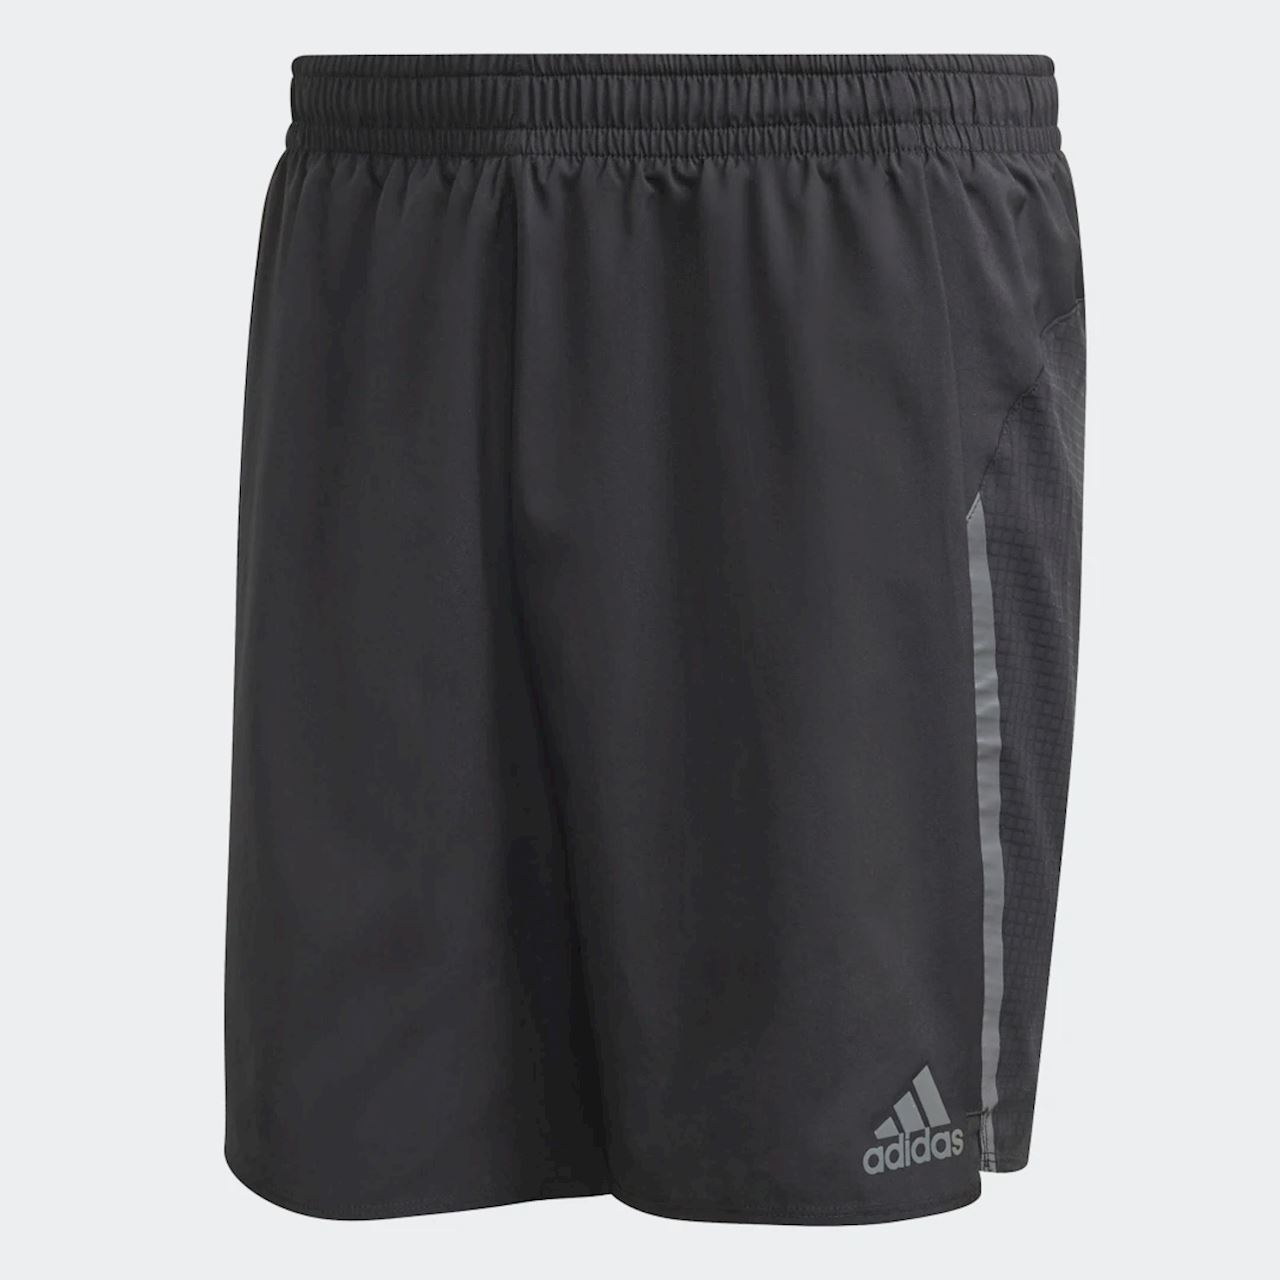 Adidas Men's Saturday Shorts - BlackToe Running Inc. - Toronto Running Specialty Store